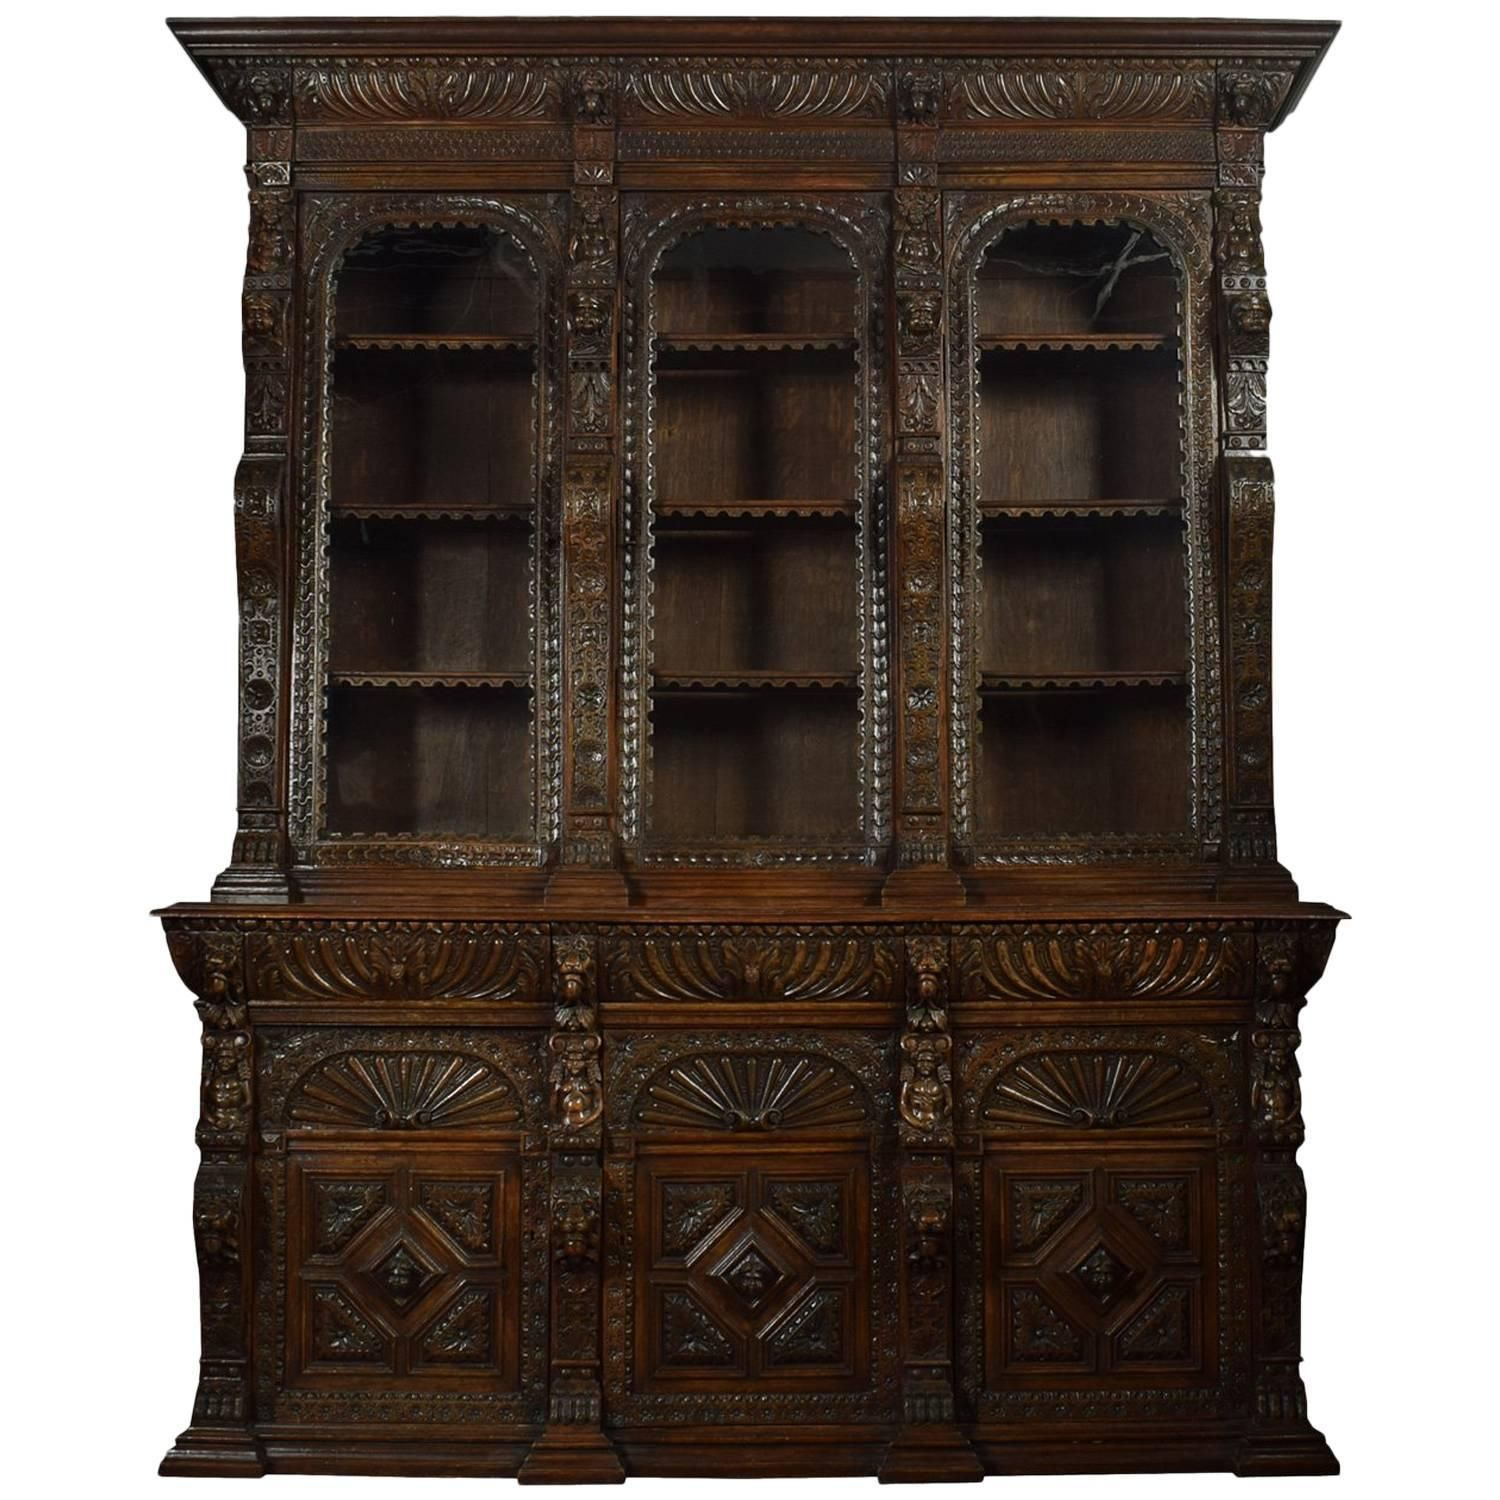 Large Renaissance Revival Carved Oak ThreeDoor Bookcase